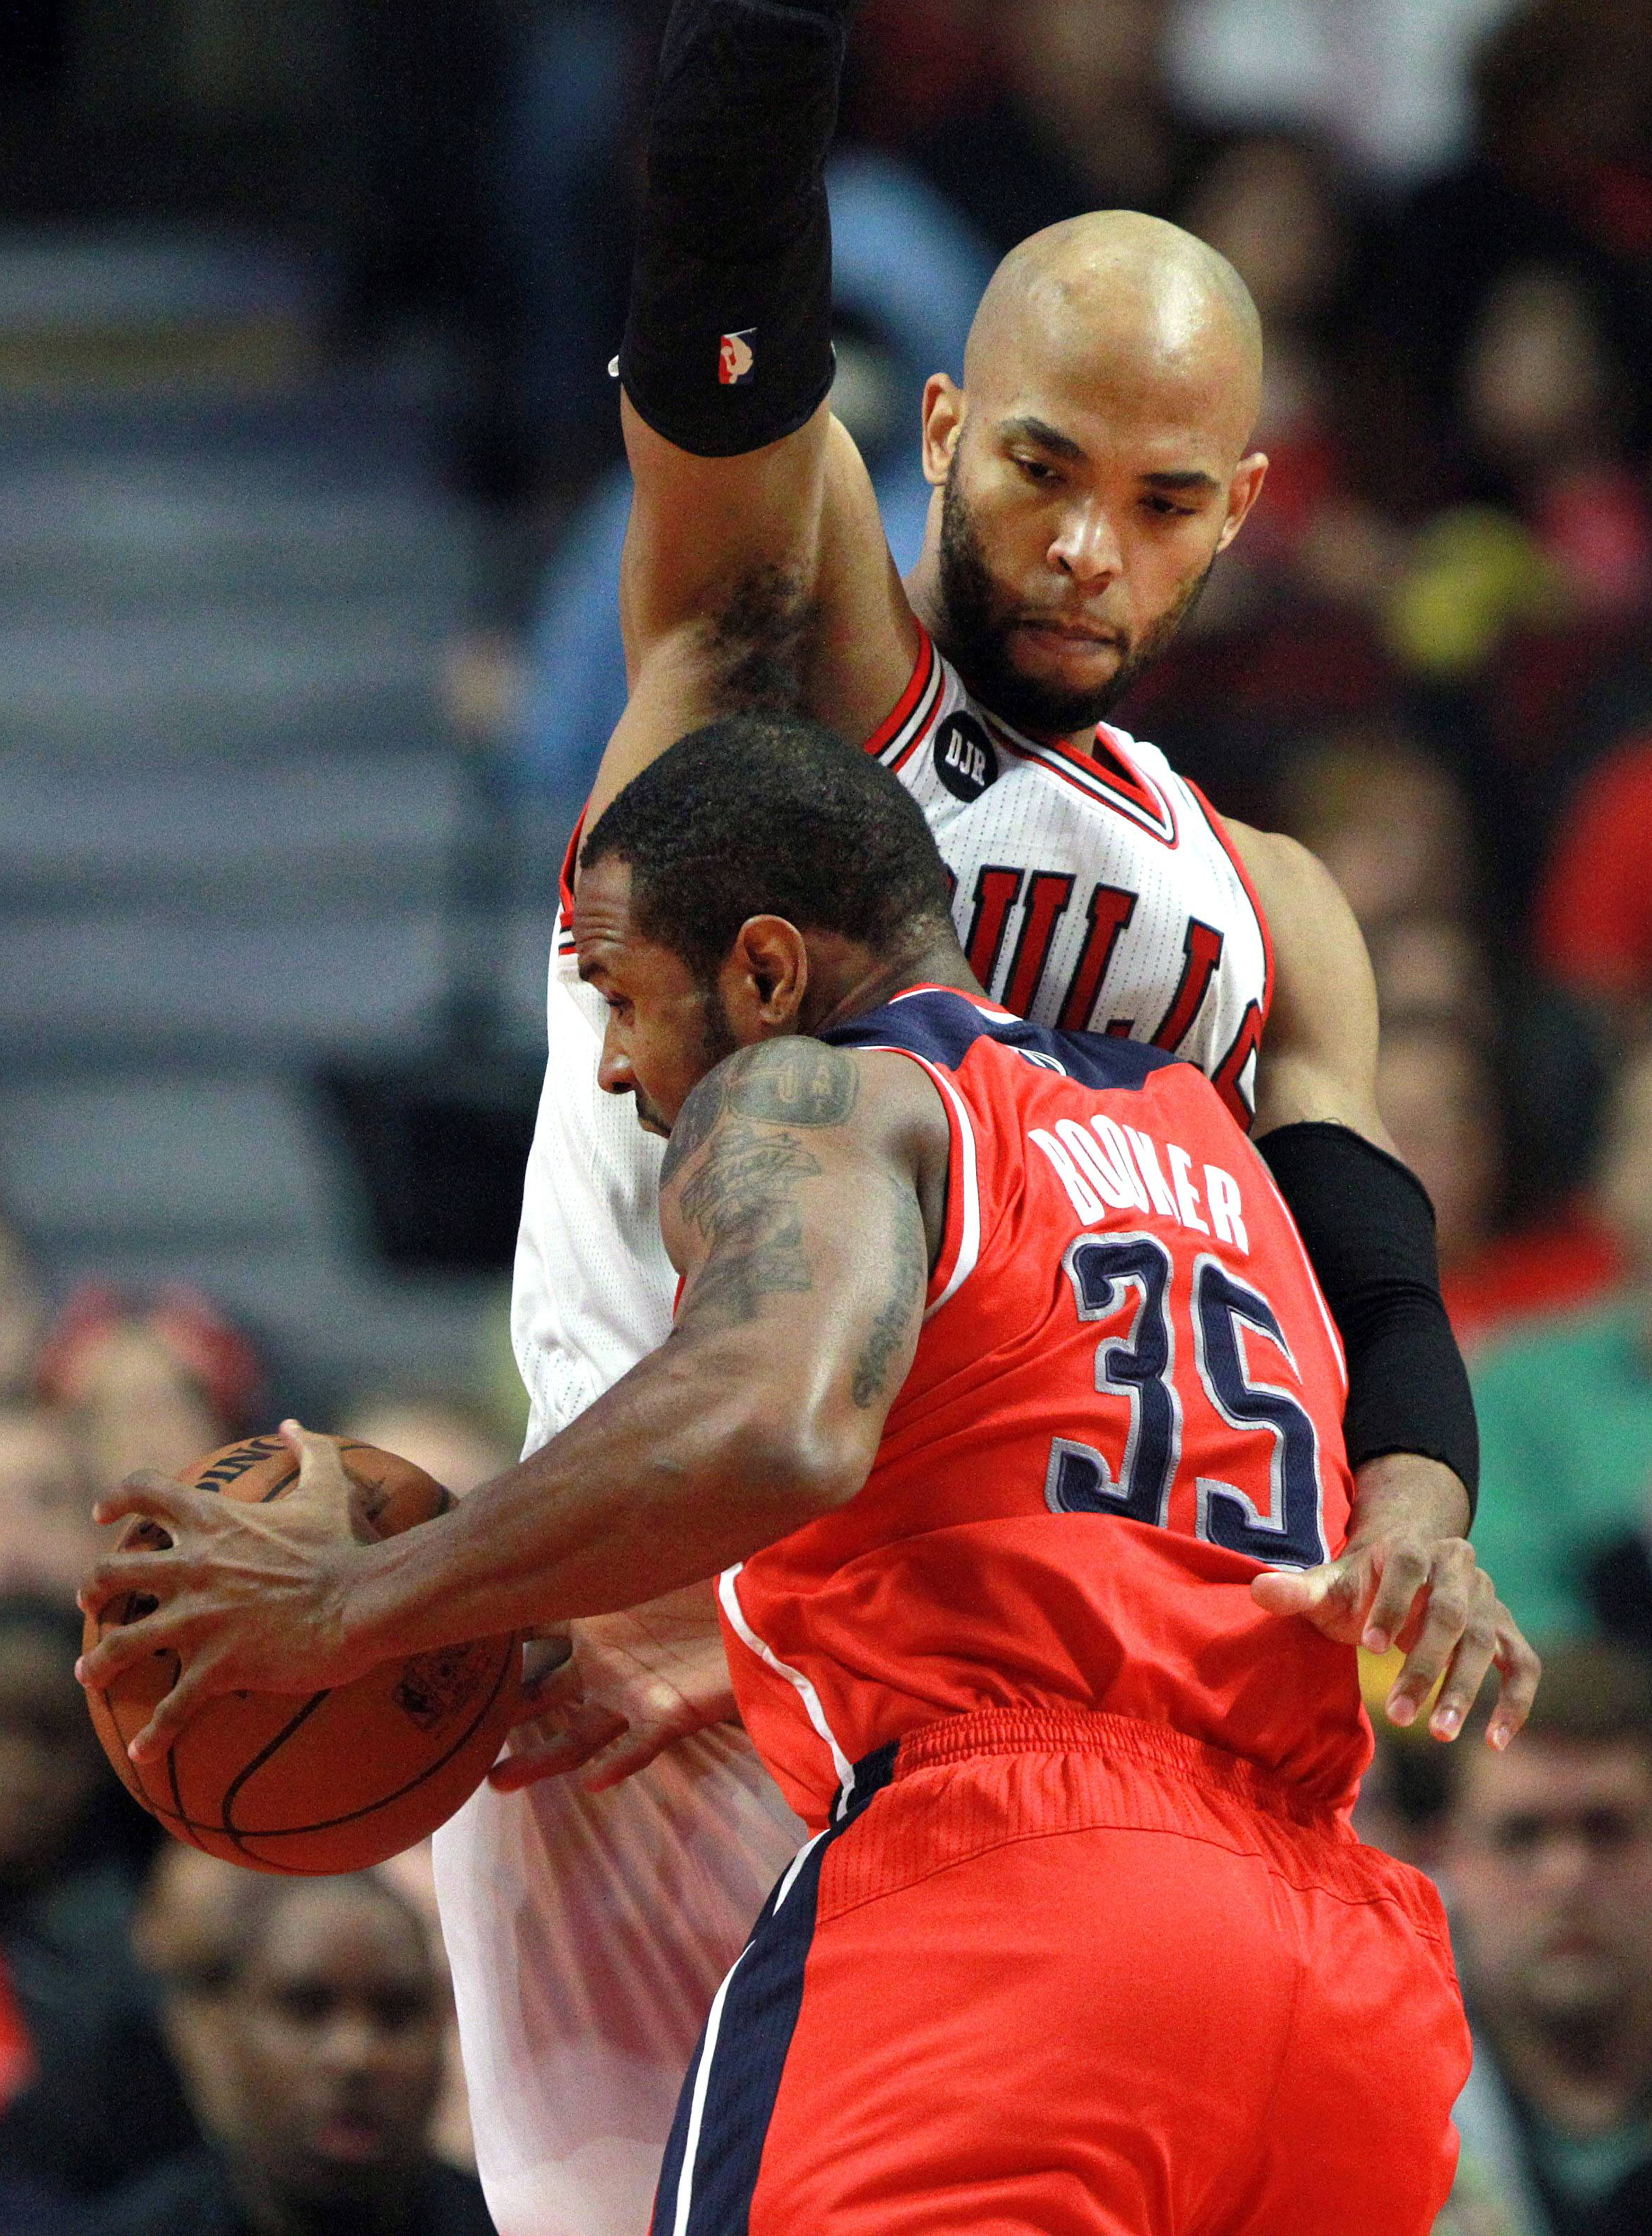 Washington Wizards forward Trevor Booker drives on Chicago Bulls forward Taj Gibson.